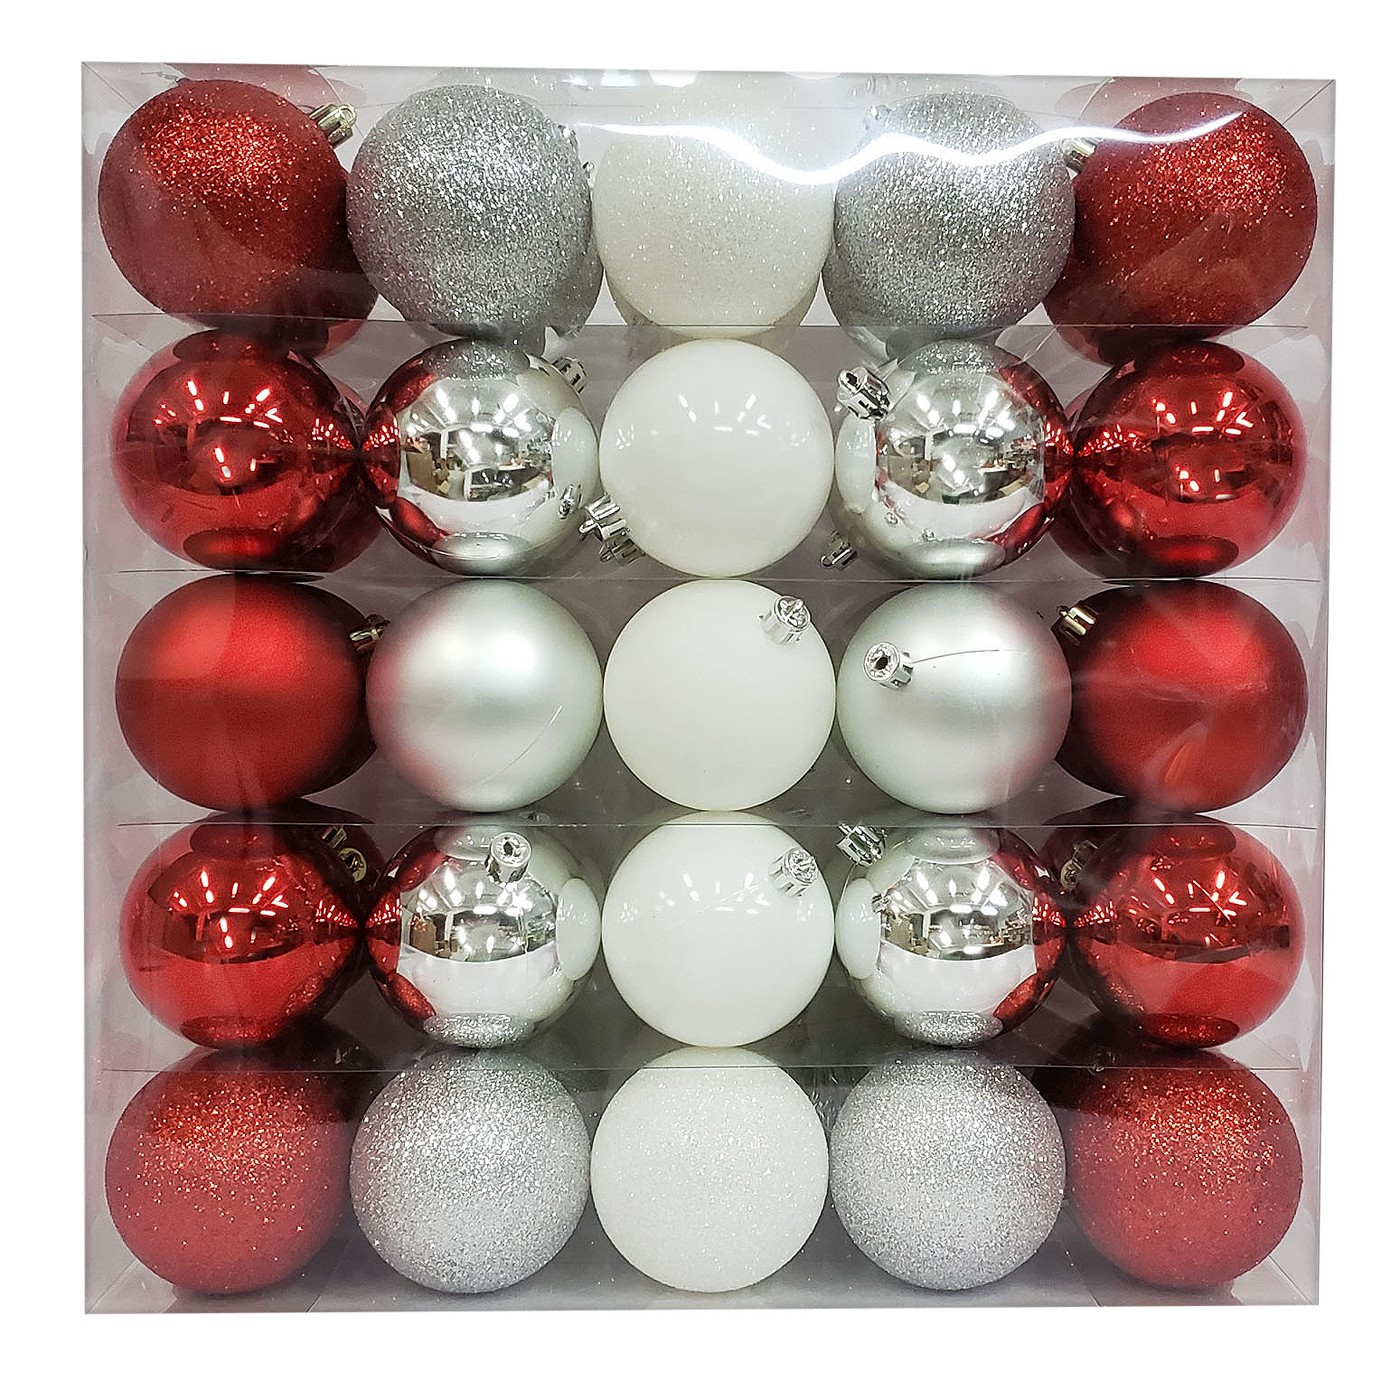 50ct Ornament Set 70mm Red/White/Silver - Wondershop™ - image 1 of 1